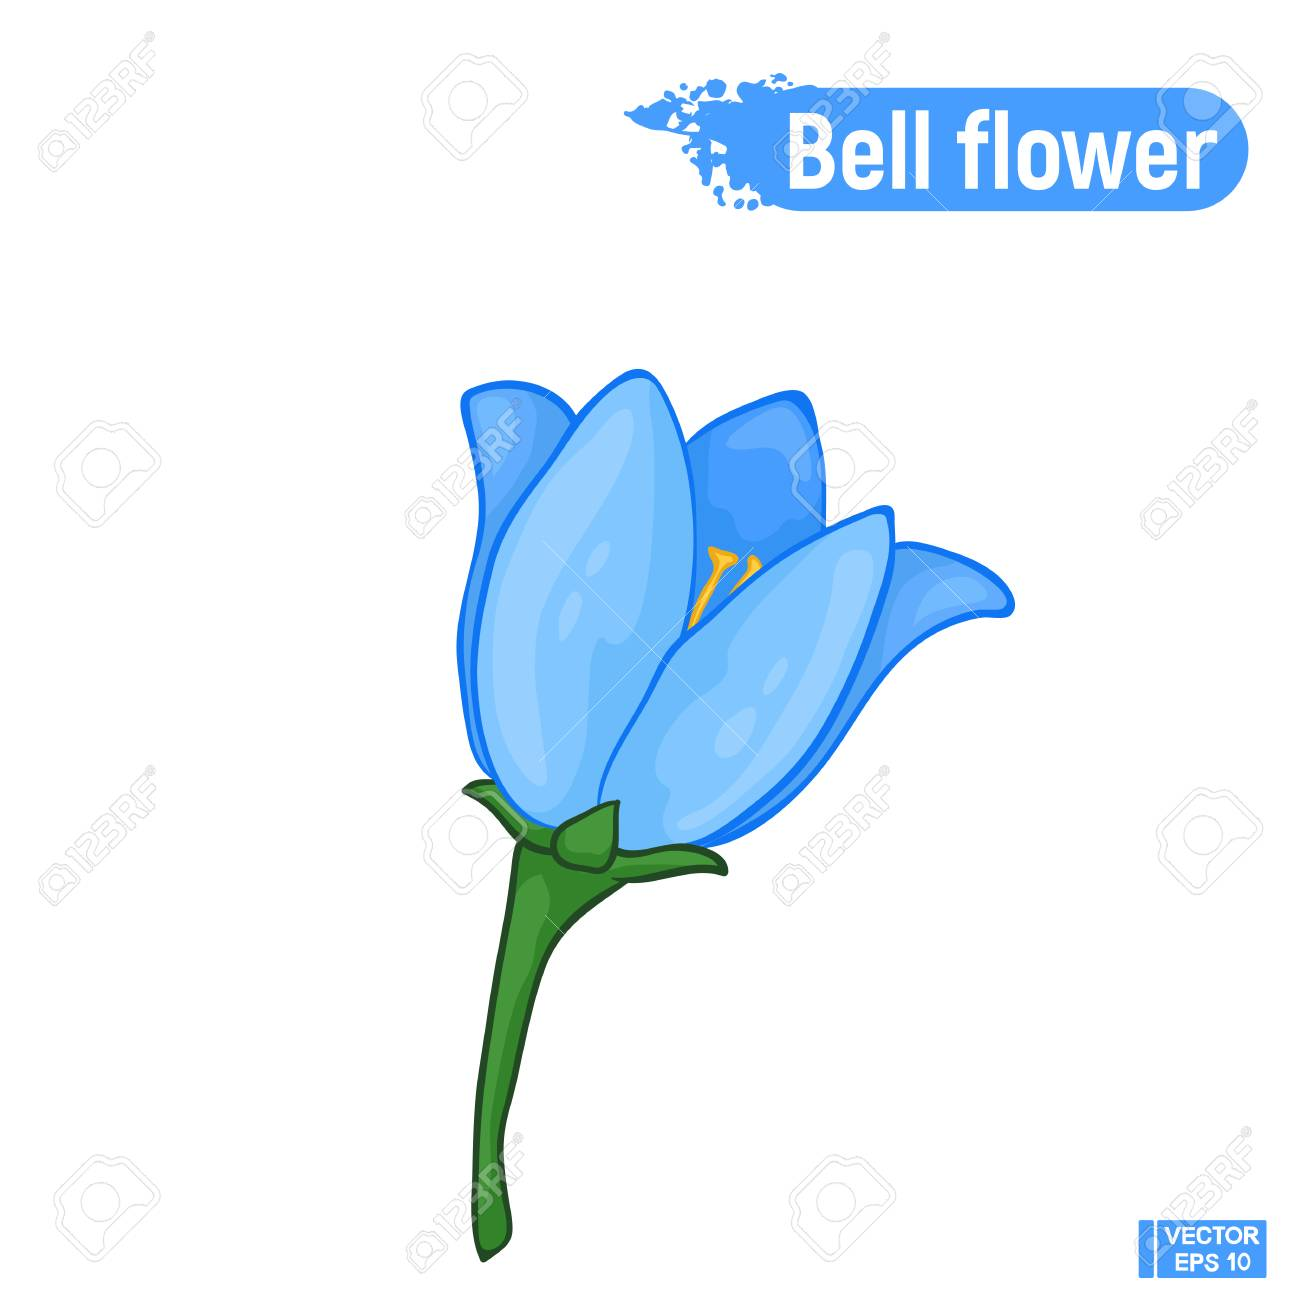 Vector image. Blue bell flower. Colorful sketch of a blossoming...